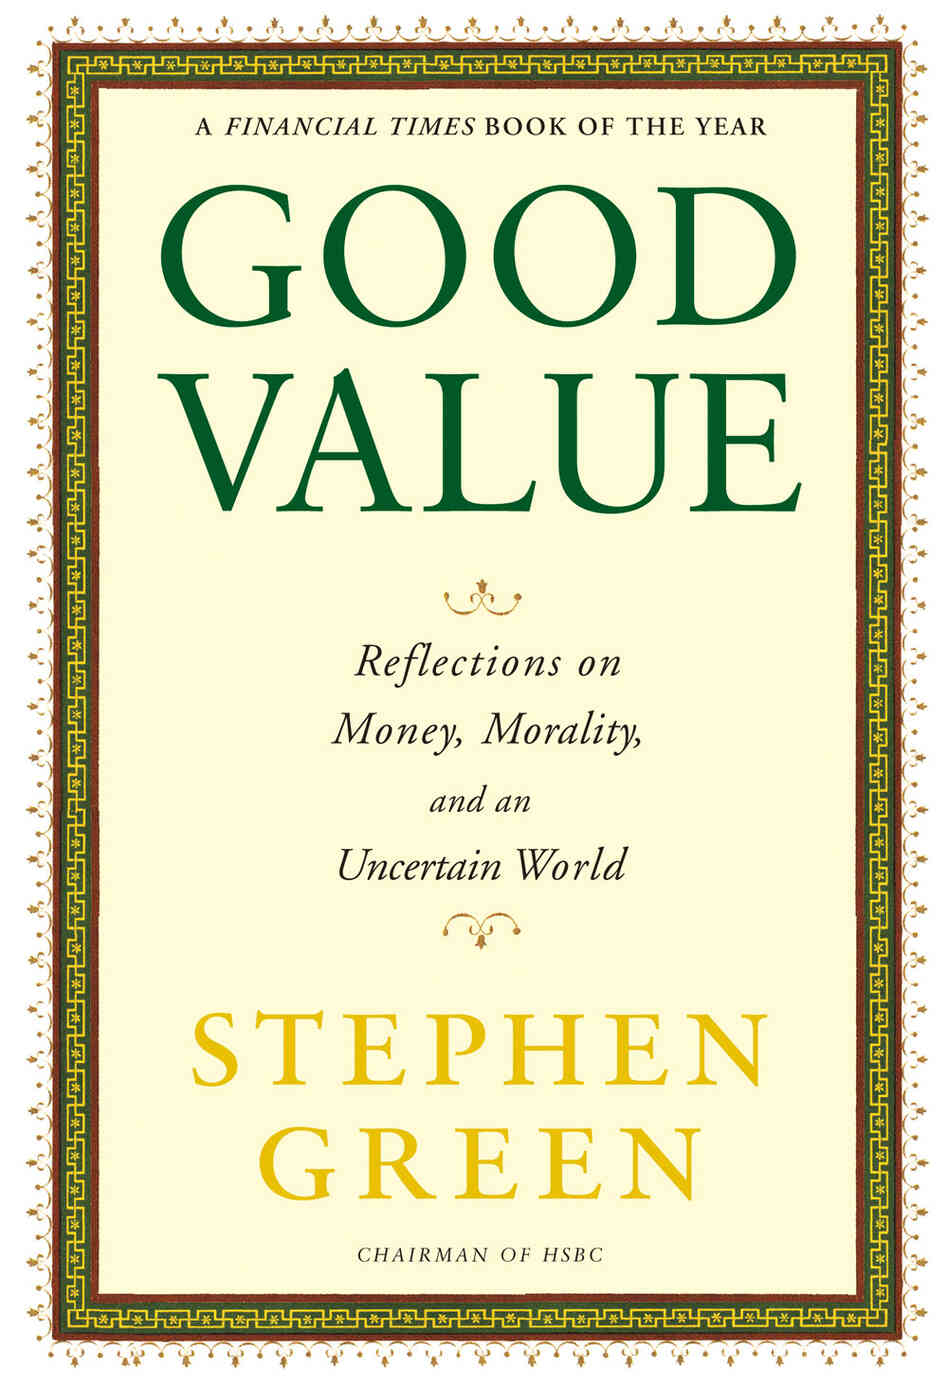 The cover of Good Value: Reflections on Money, Morality and an Uncertain World